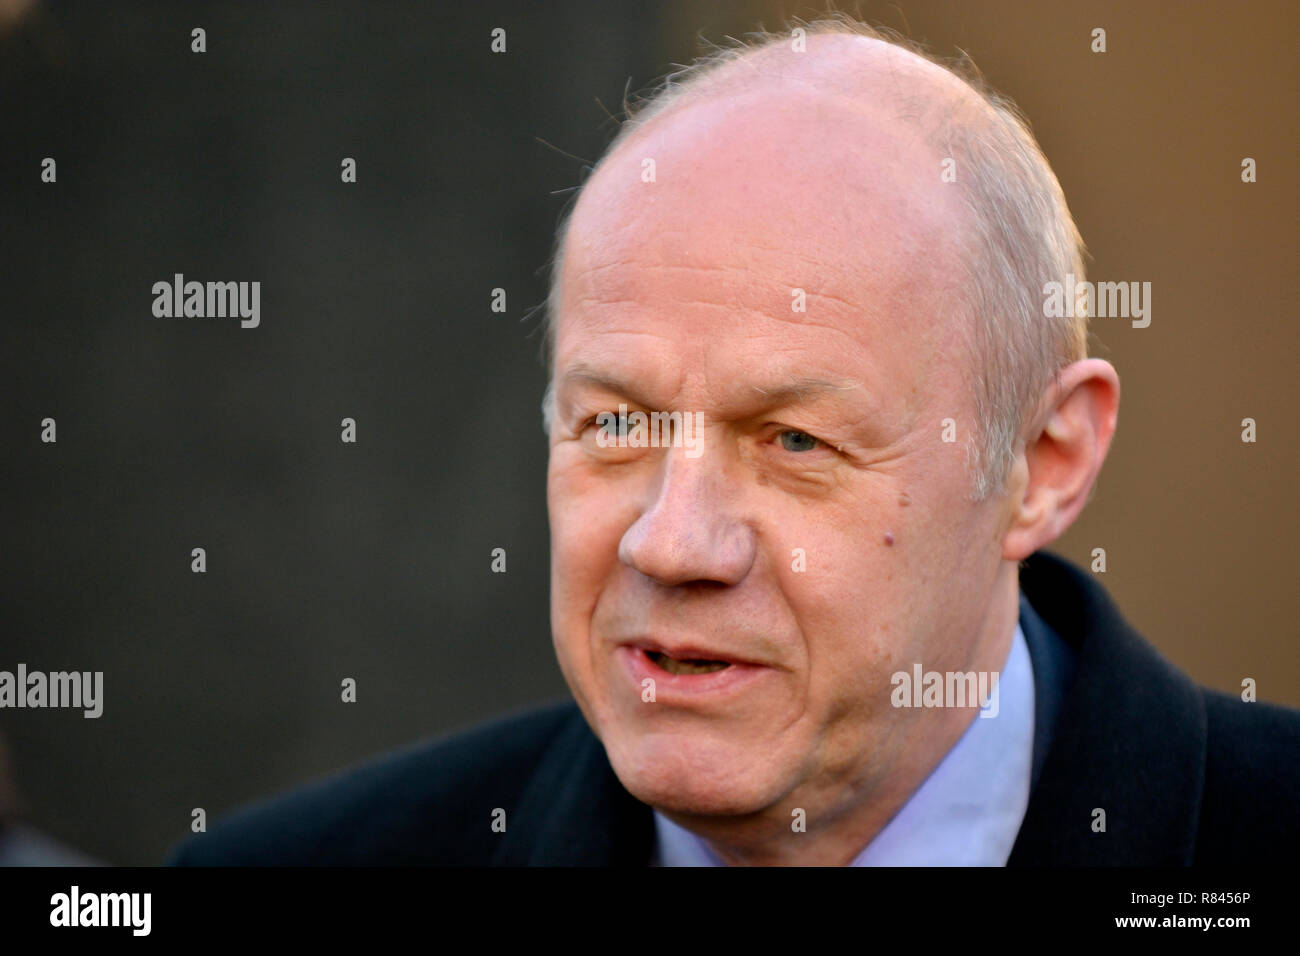 Damian Green MP (Conservative: Ashford) on College Green, Westminster, December 2018 - Stock Image